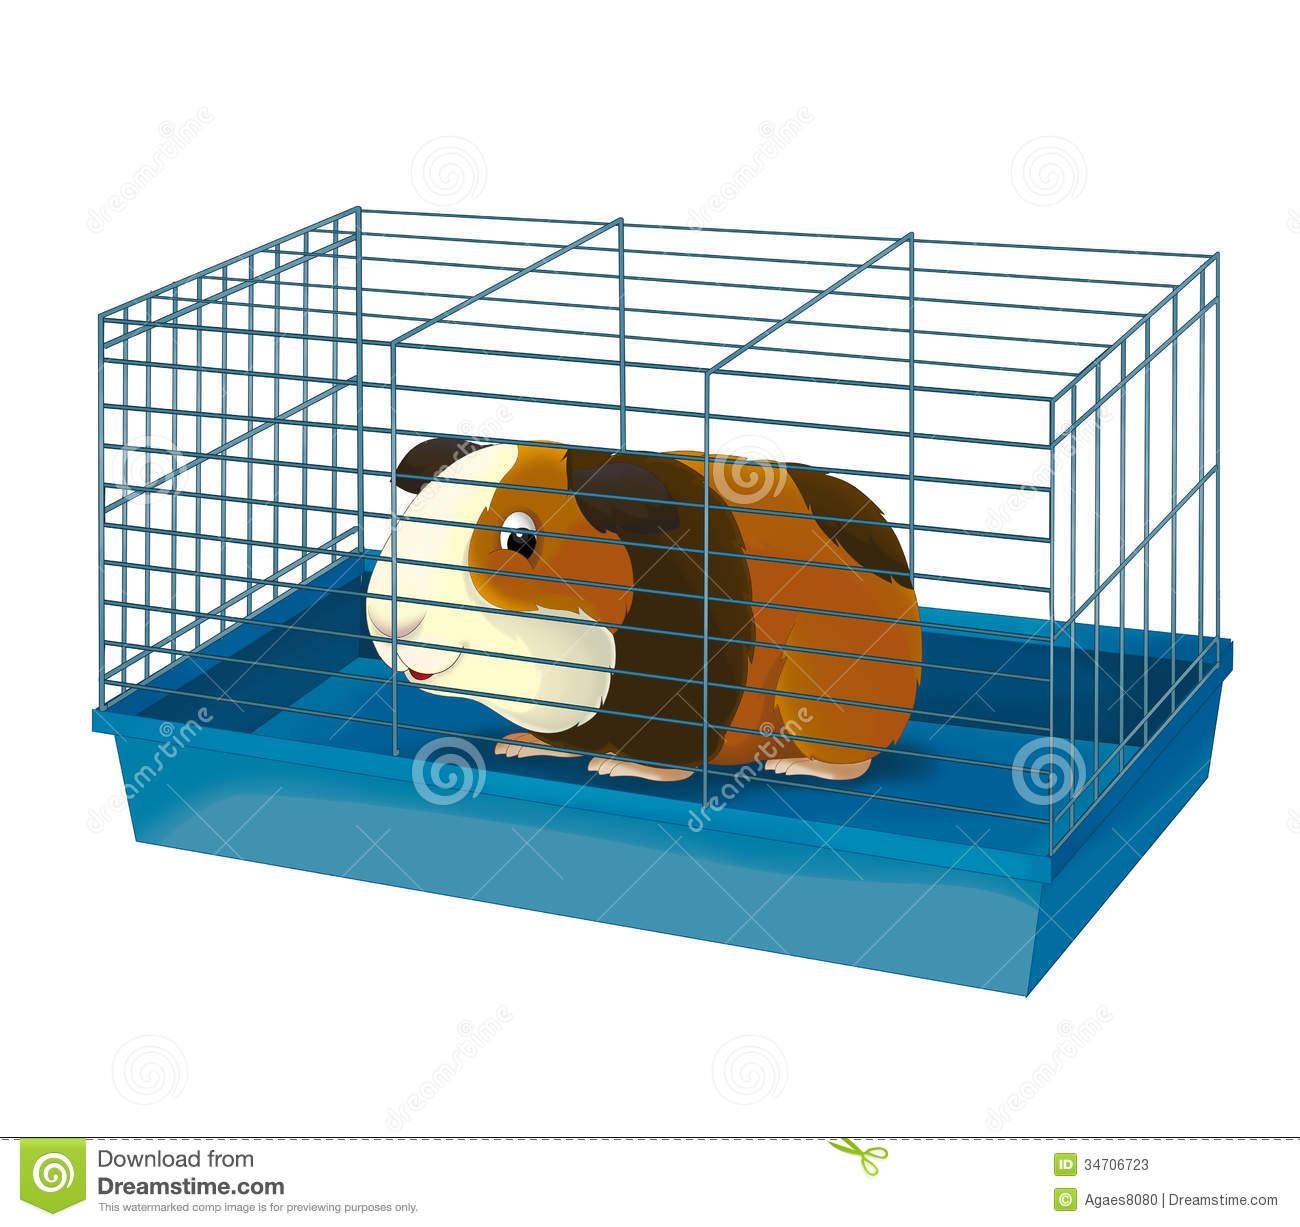 the cartoon guinea pig illustration for the children clipart kitchen cabinets clip art kitchen pictures